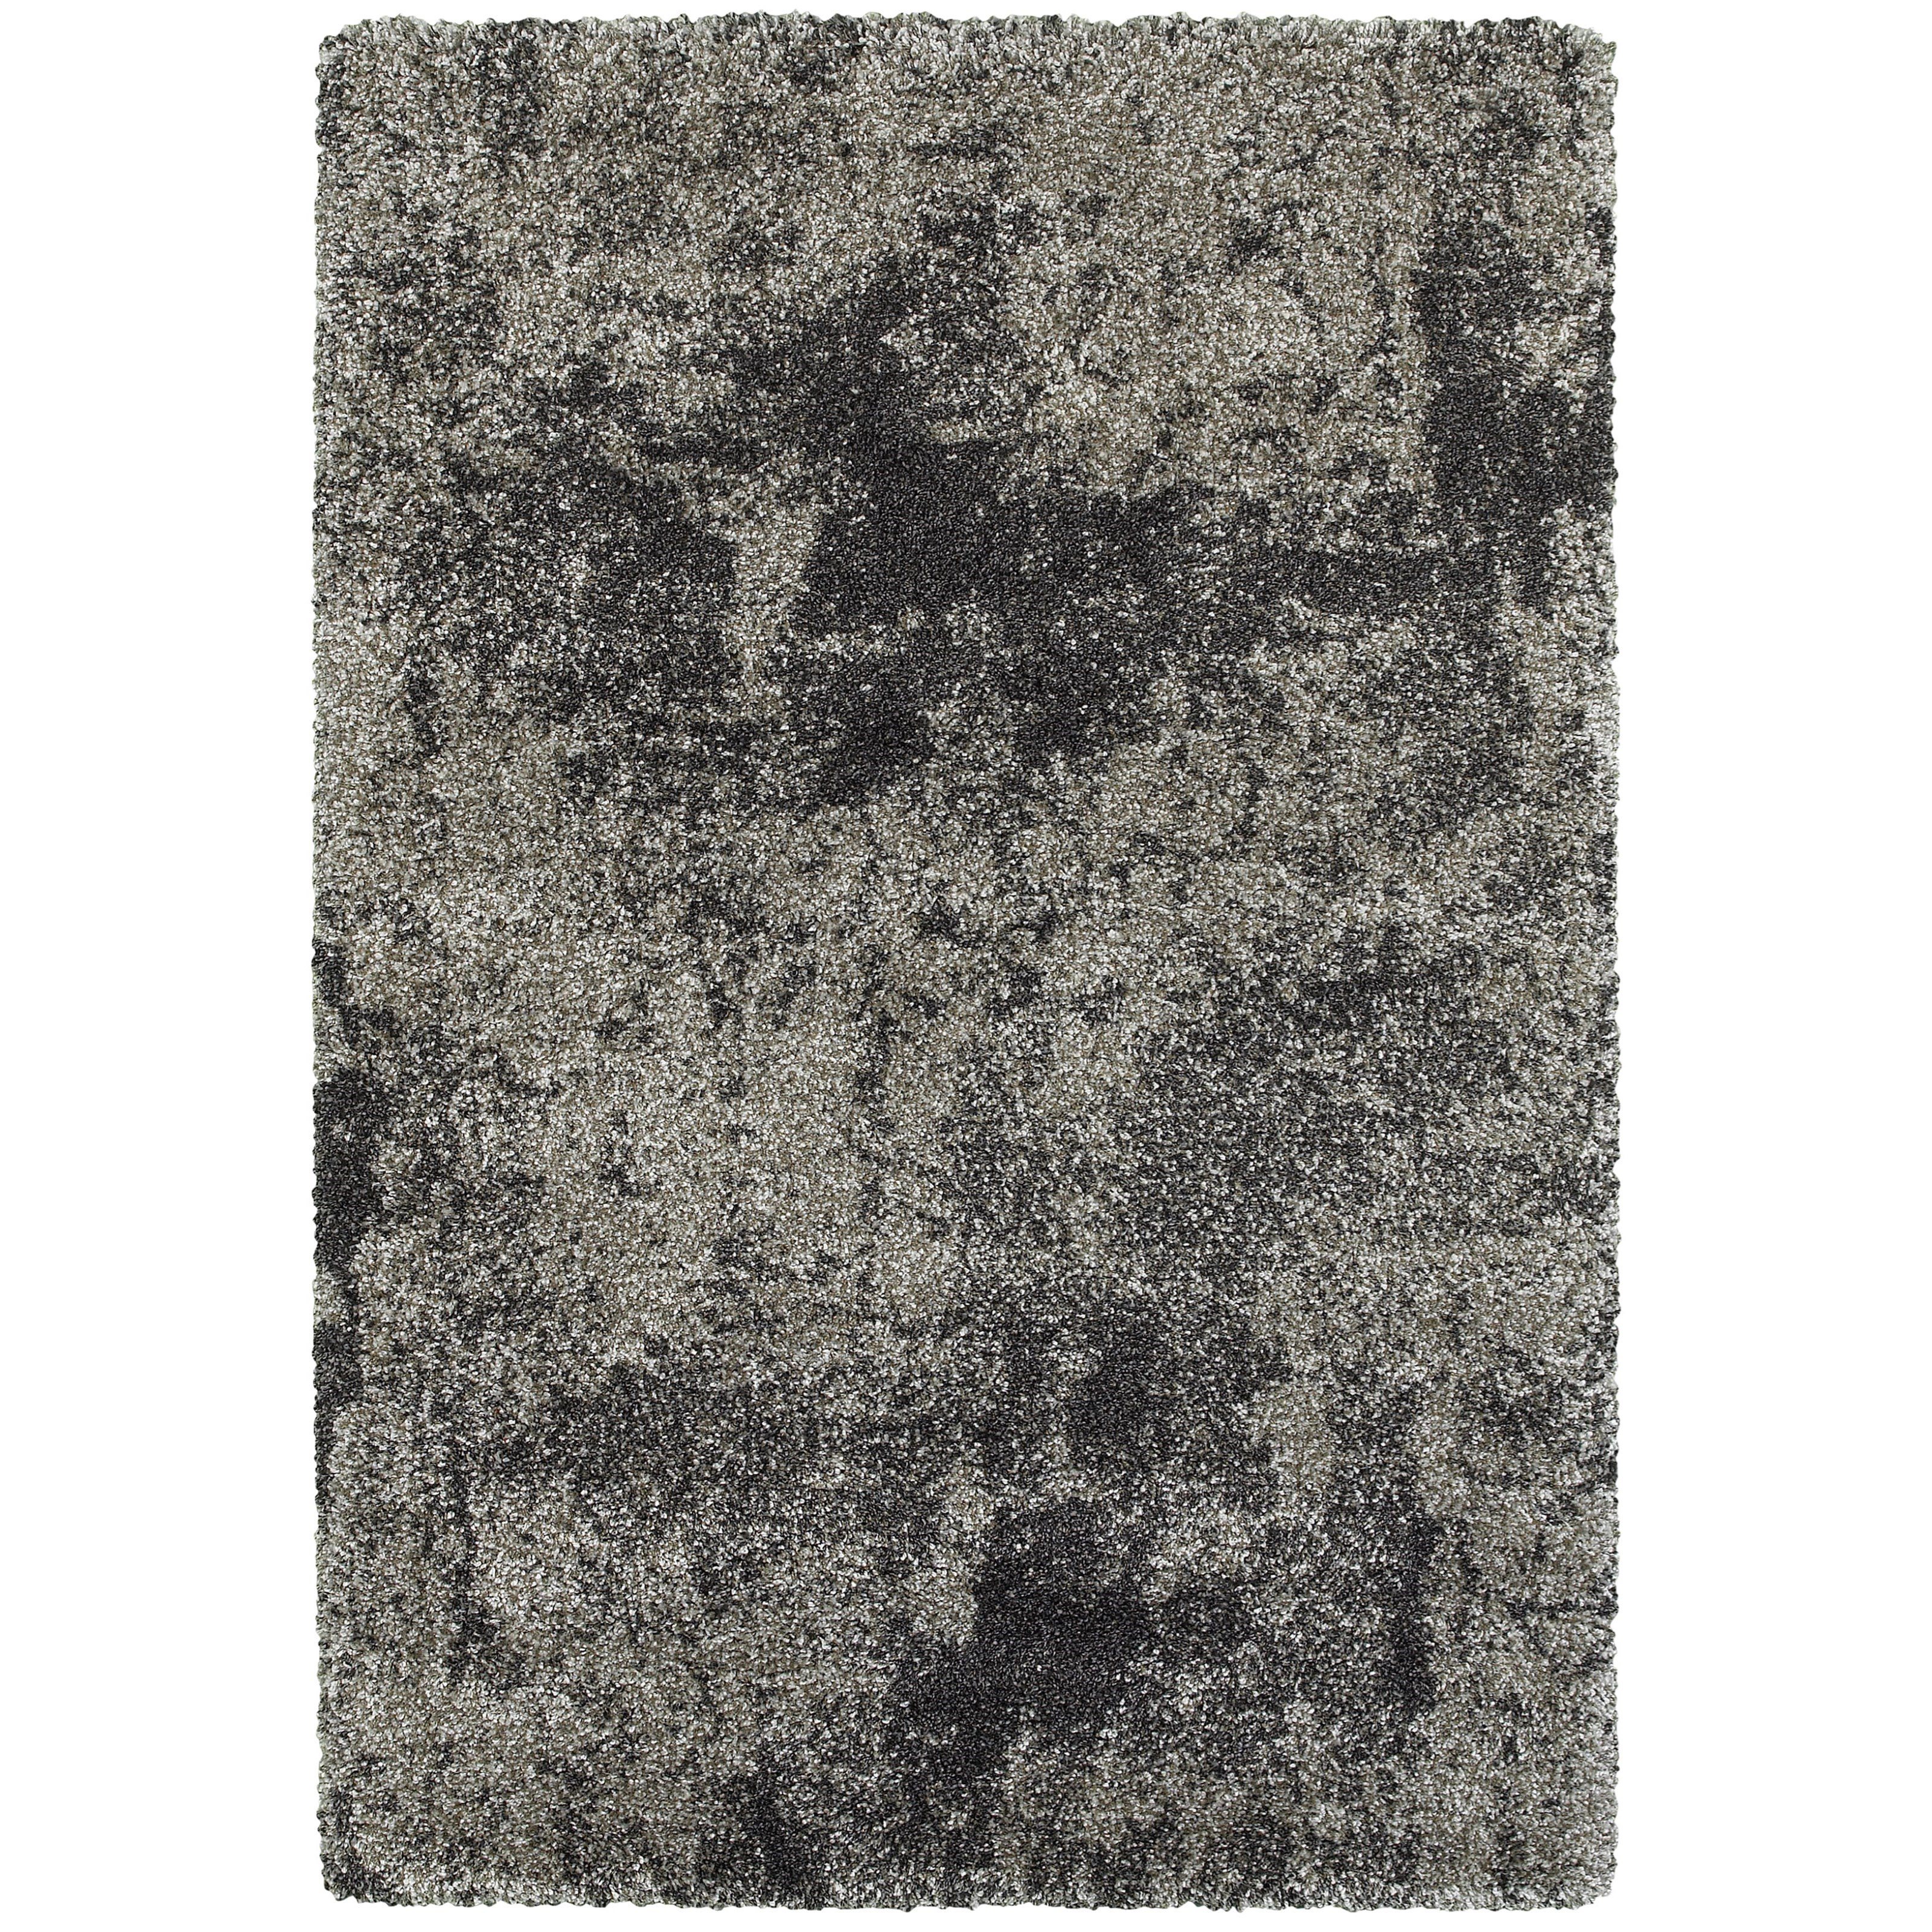 """Henderson 9'10"""" X 12'10"""" Shag Grey/ Charcoal Rectangle by Oriental Weavers at Miller Waldrop Furniture and Decor"""